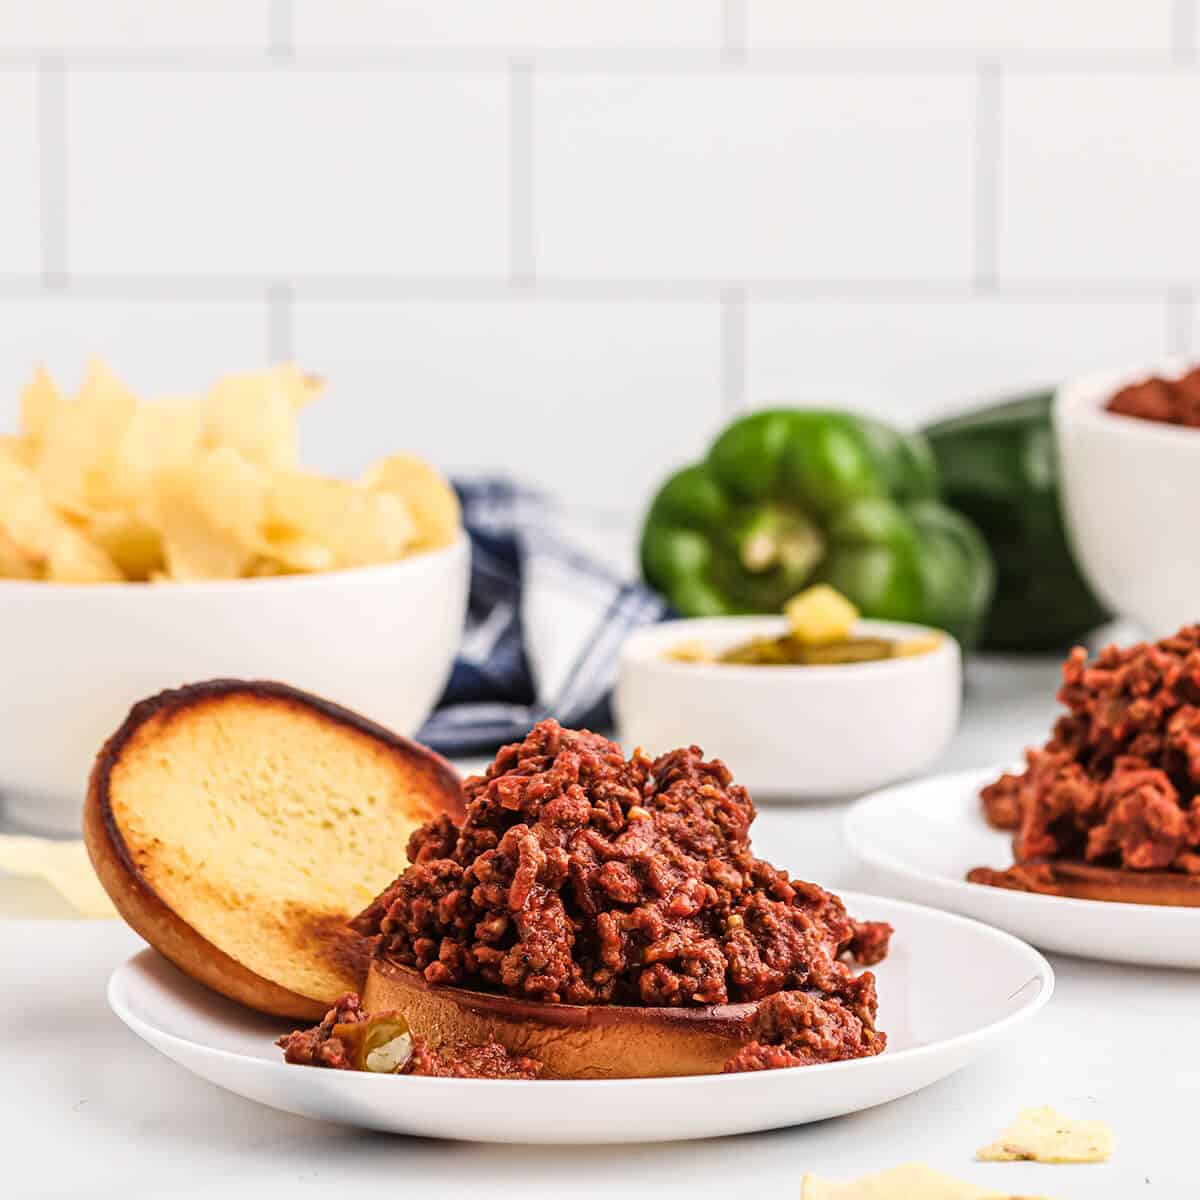 Assembled sloppy joe sandwich on a serving plate with pickles and chips.